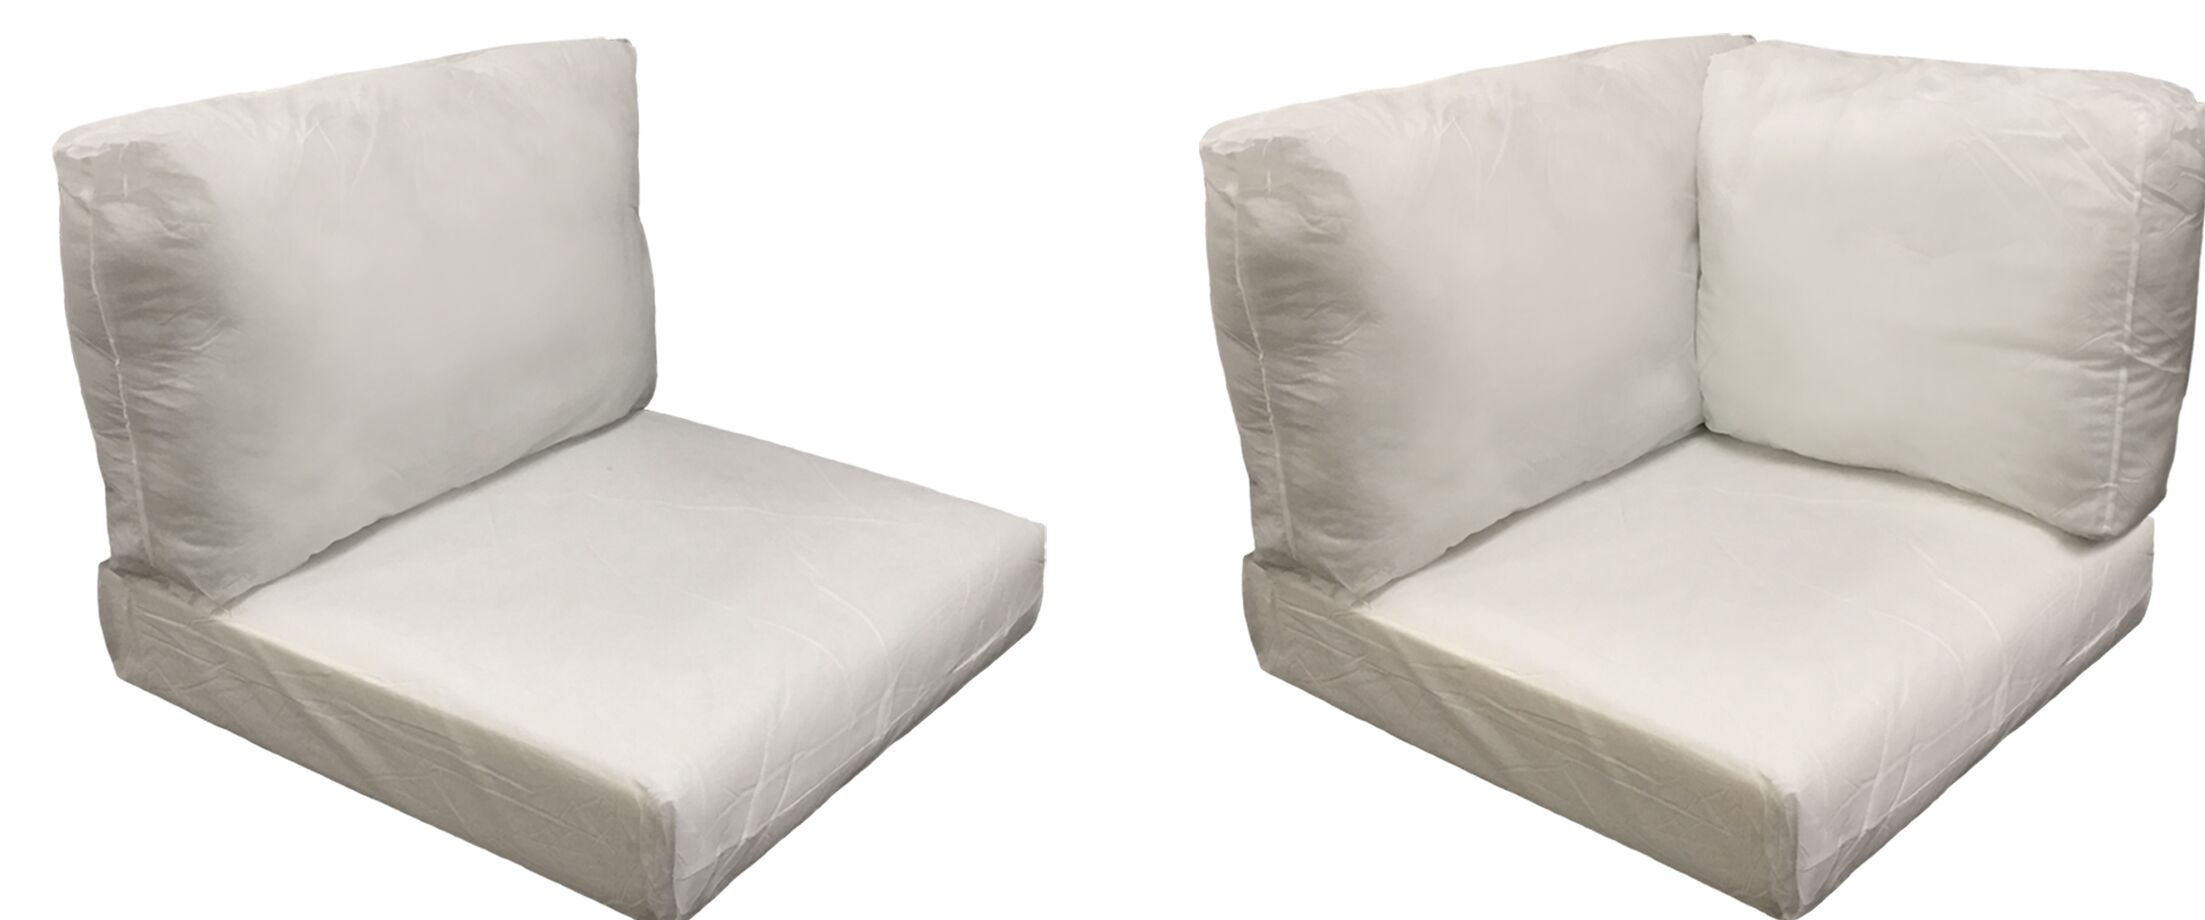 Fairmont Outdoor�Replacement Cushion Set